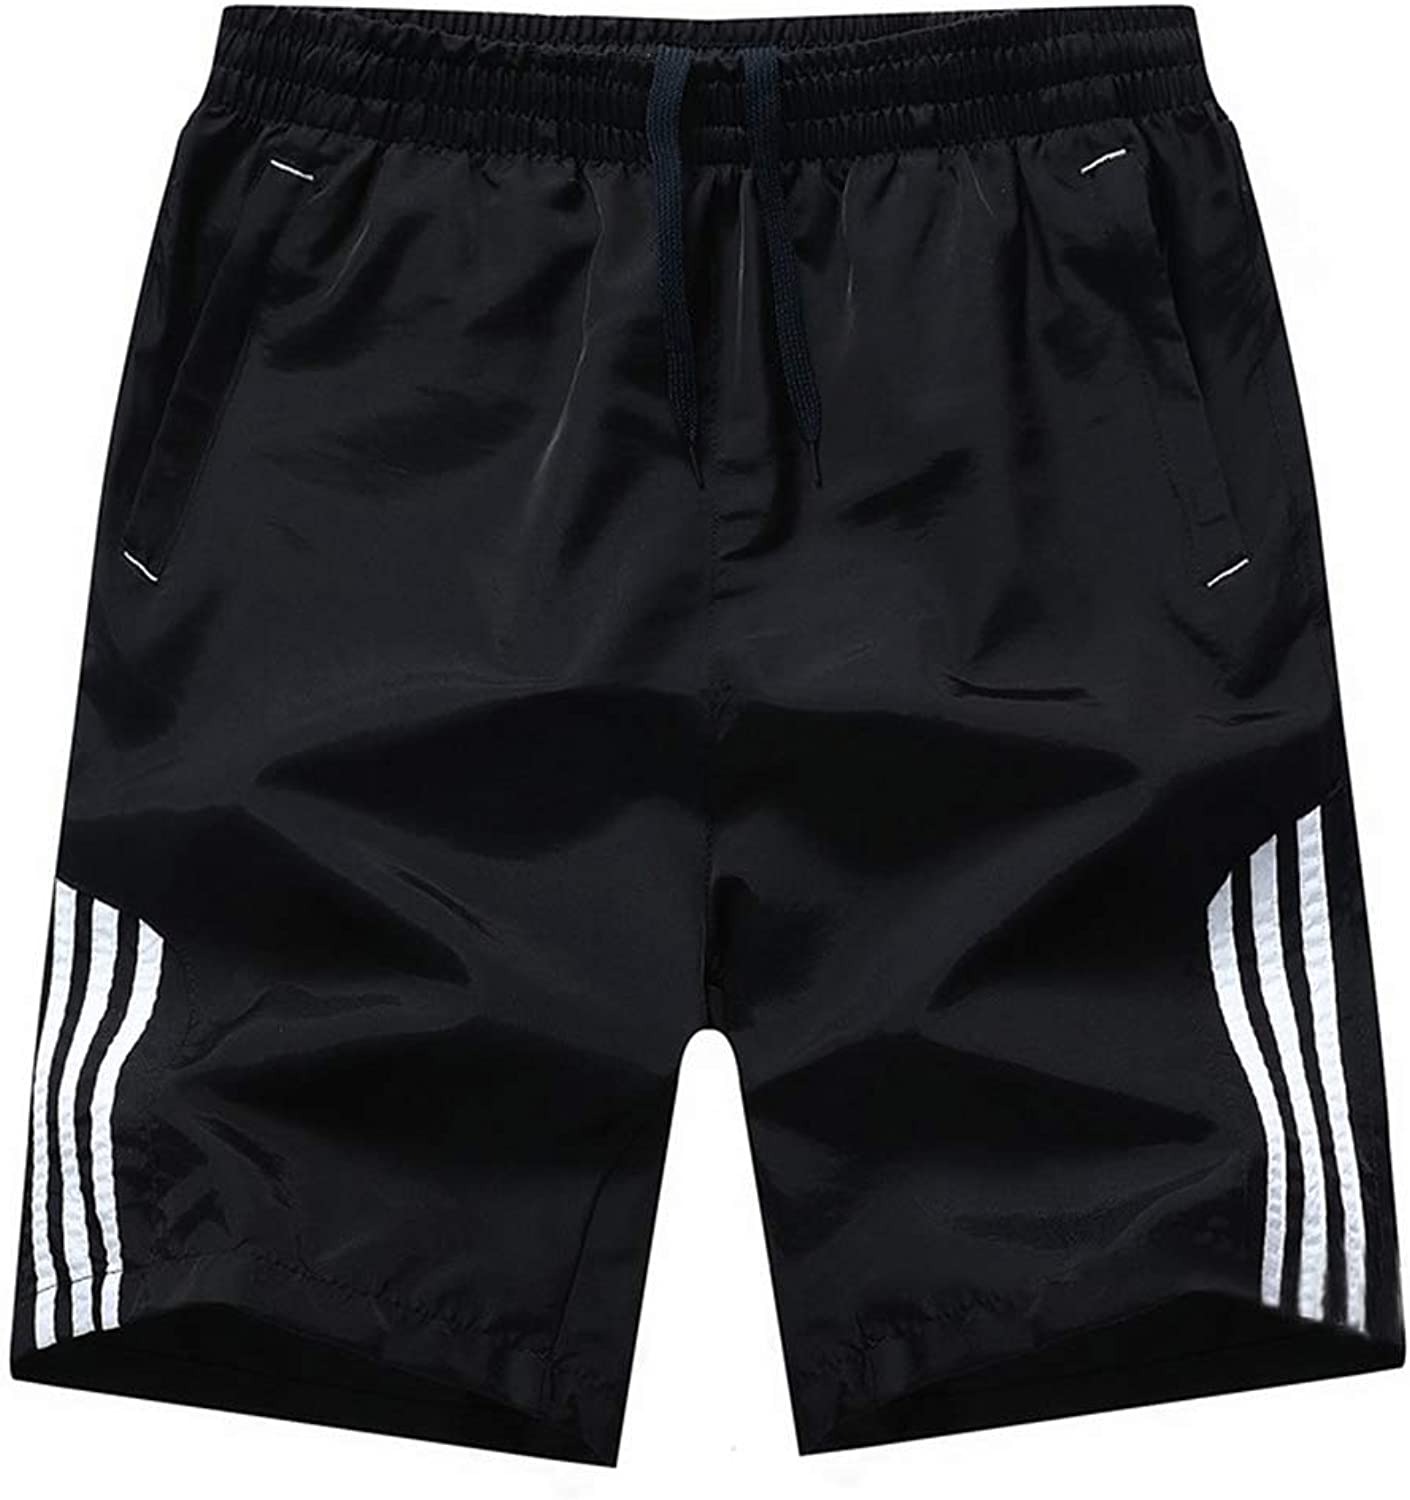 LBL Men's Fitted Gym Workout Shorts Bodybuilding Lightweight Runing Training Jogger Gym Shorts